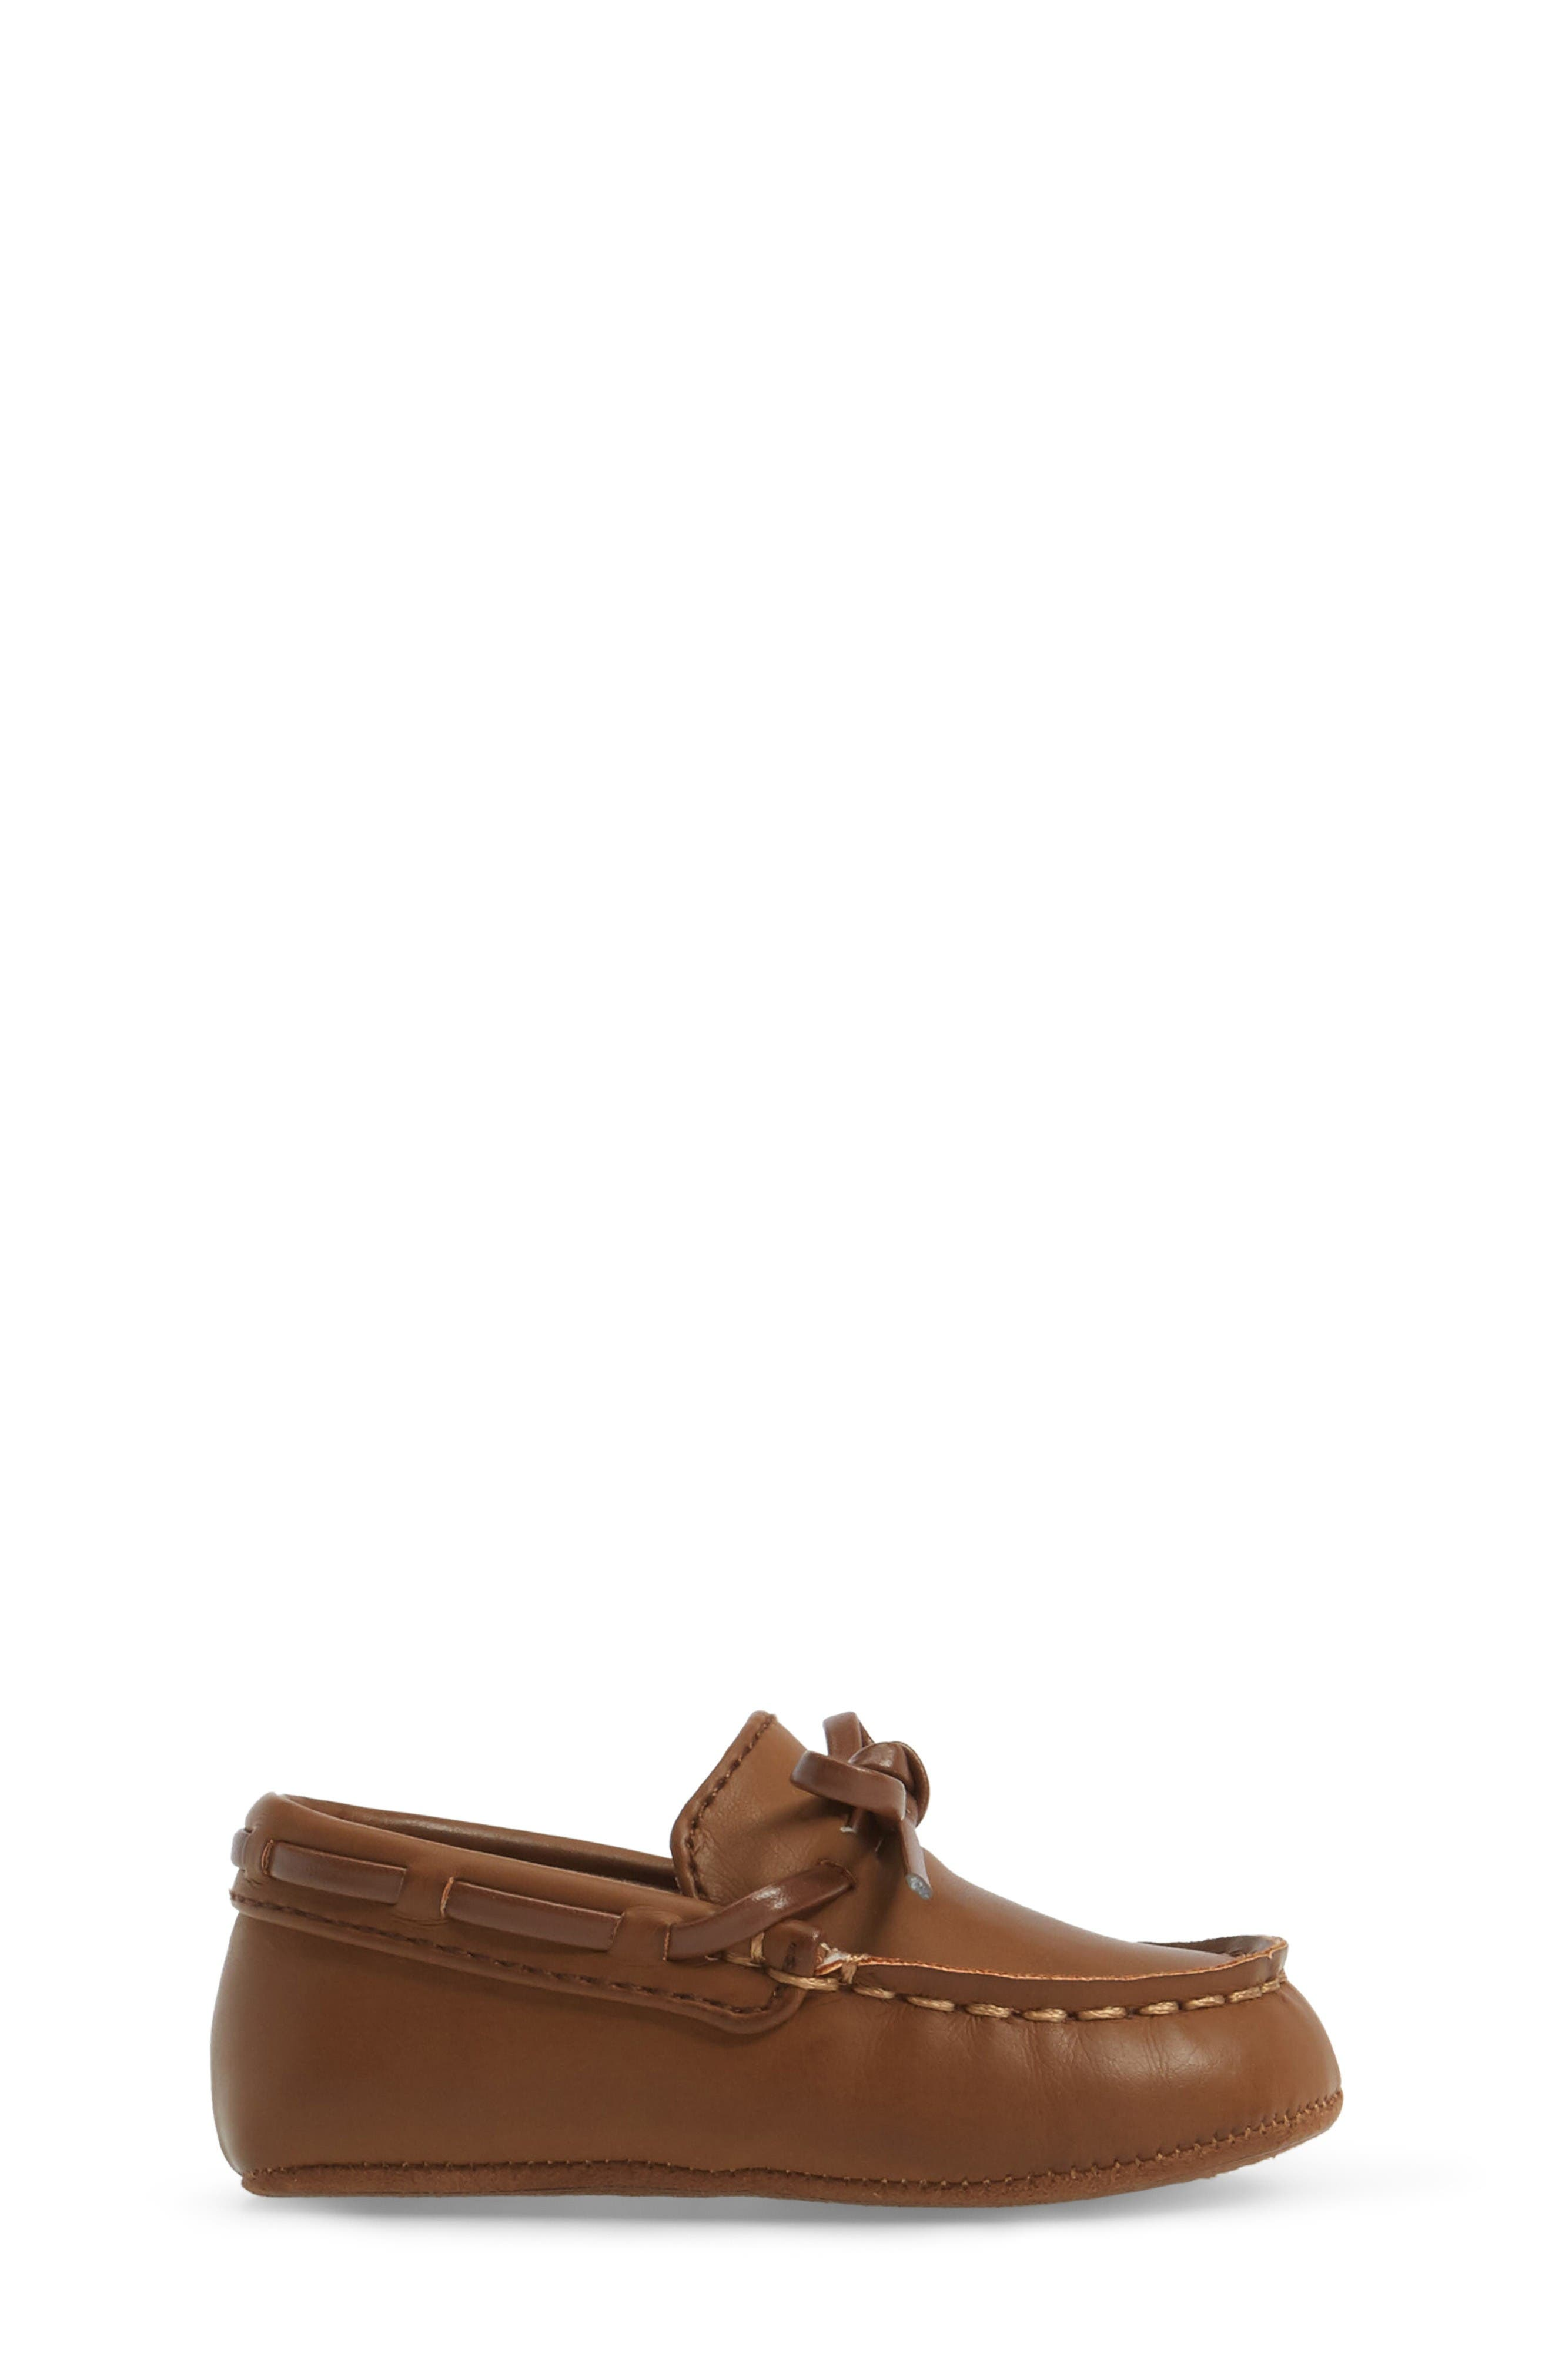 Baby Boat Shoe,                             Alternate thumbnail 3, color,                             Caramel